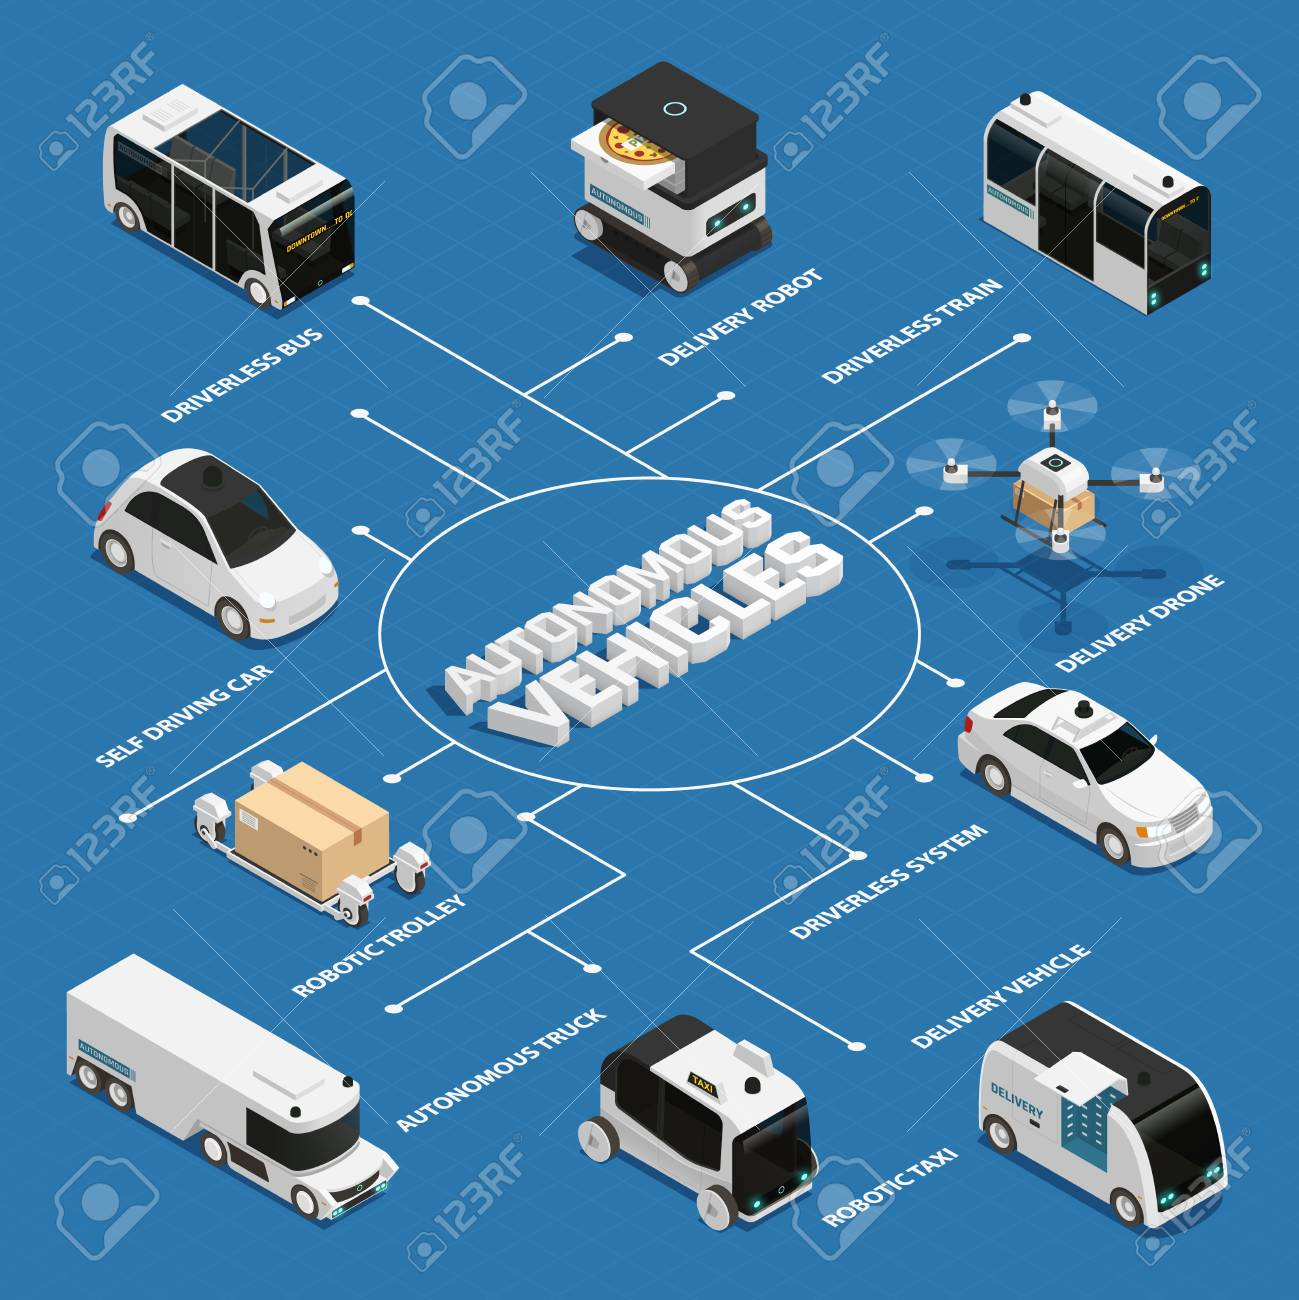 Autonomous vehicles including public transport and truck, robotic delivery technologies isometric flowchart on blue background vector illustration - 103669629